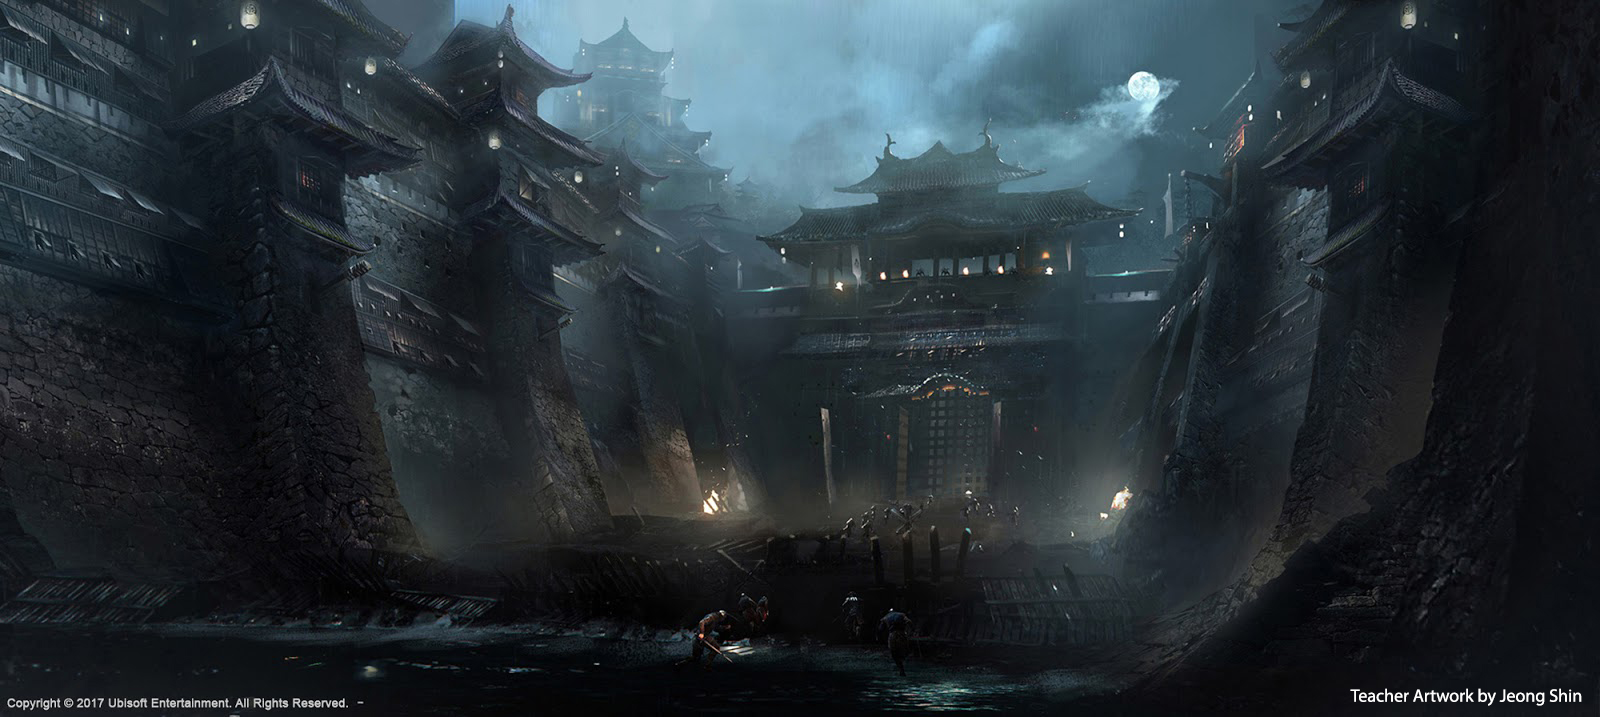 Japan Fall Wallpaper Syn Studio Concept Art Diploma Program Last Chance To